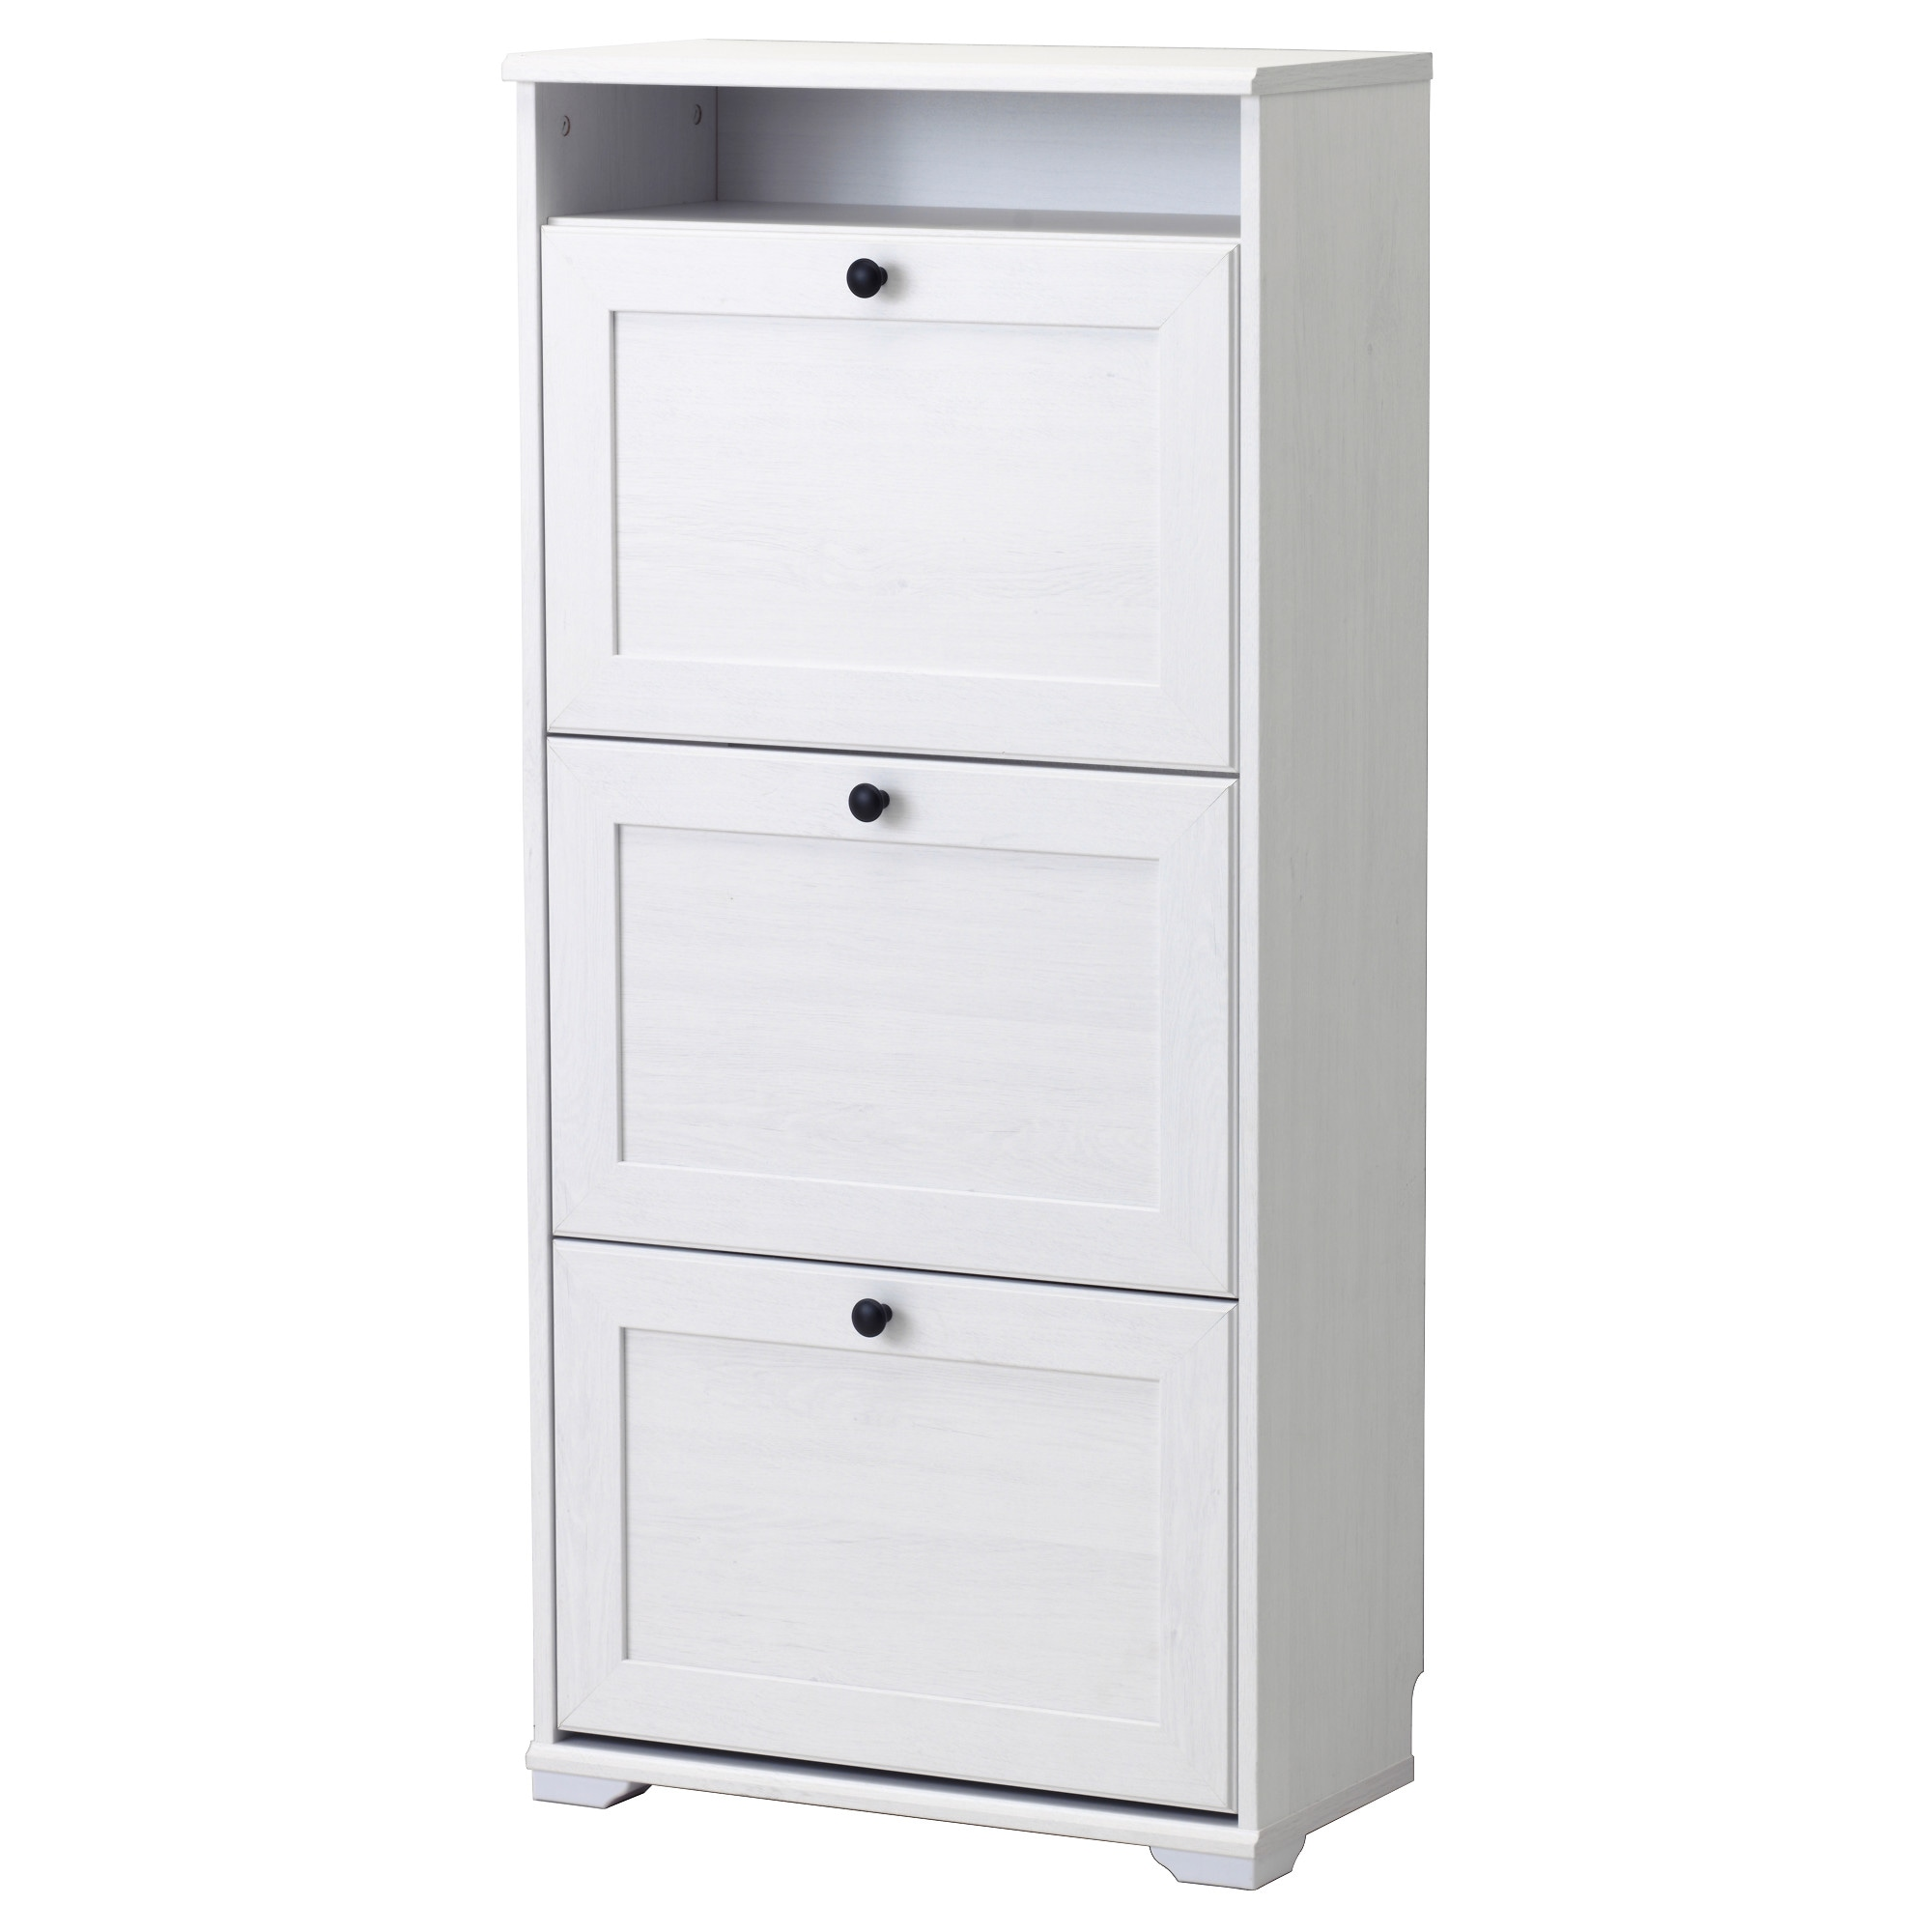 Design Ikea Shoe Storage brusali shoe cabinet with 3 compartments white ikea